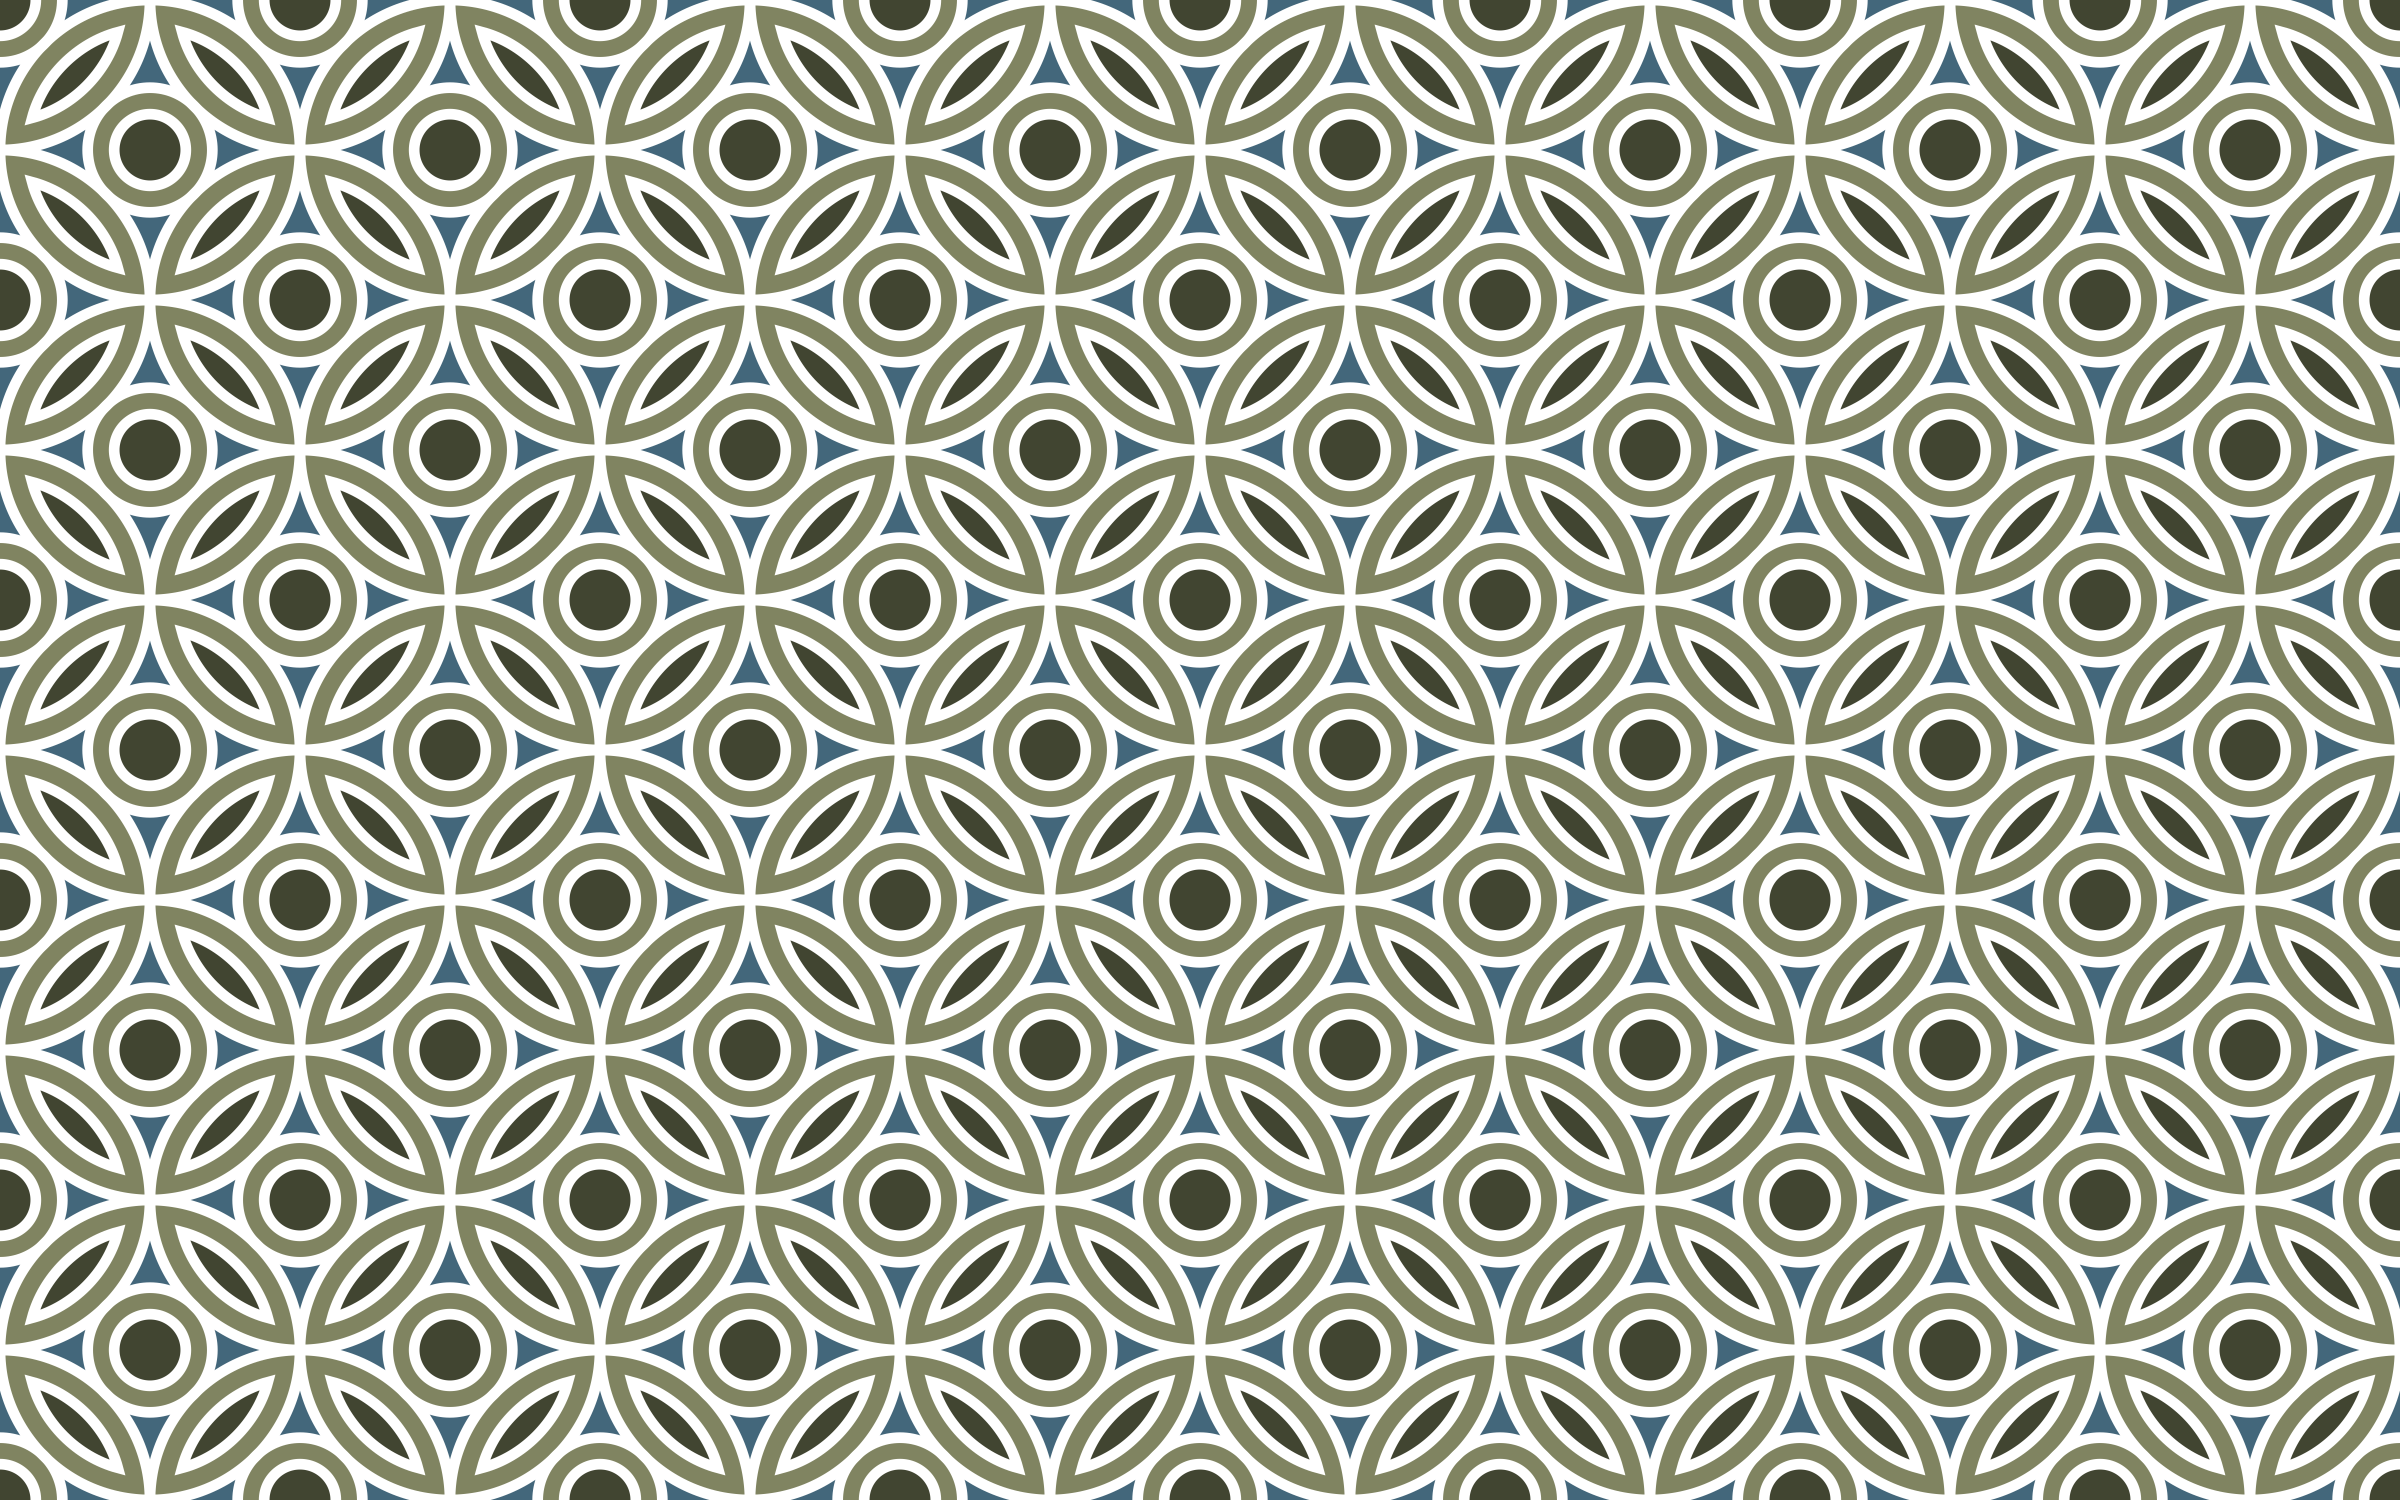 Background pattern 252 (colour 5) by Firkin